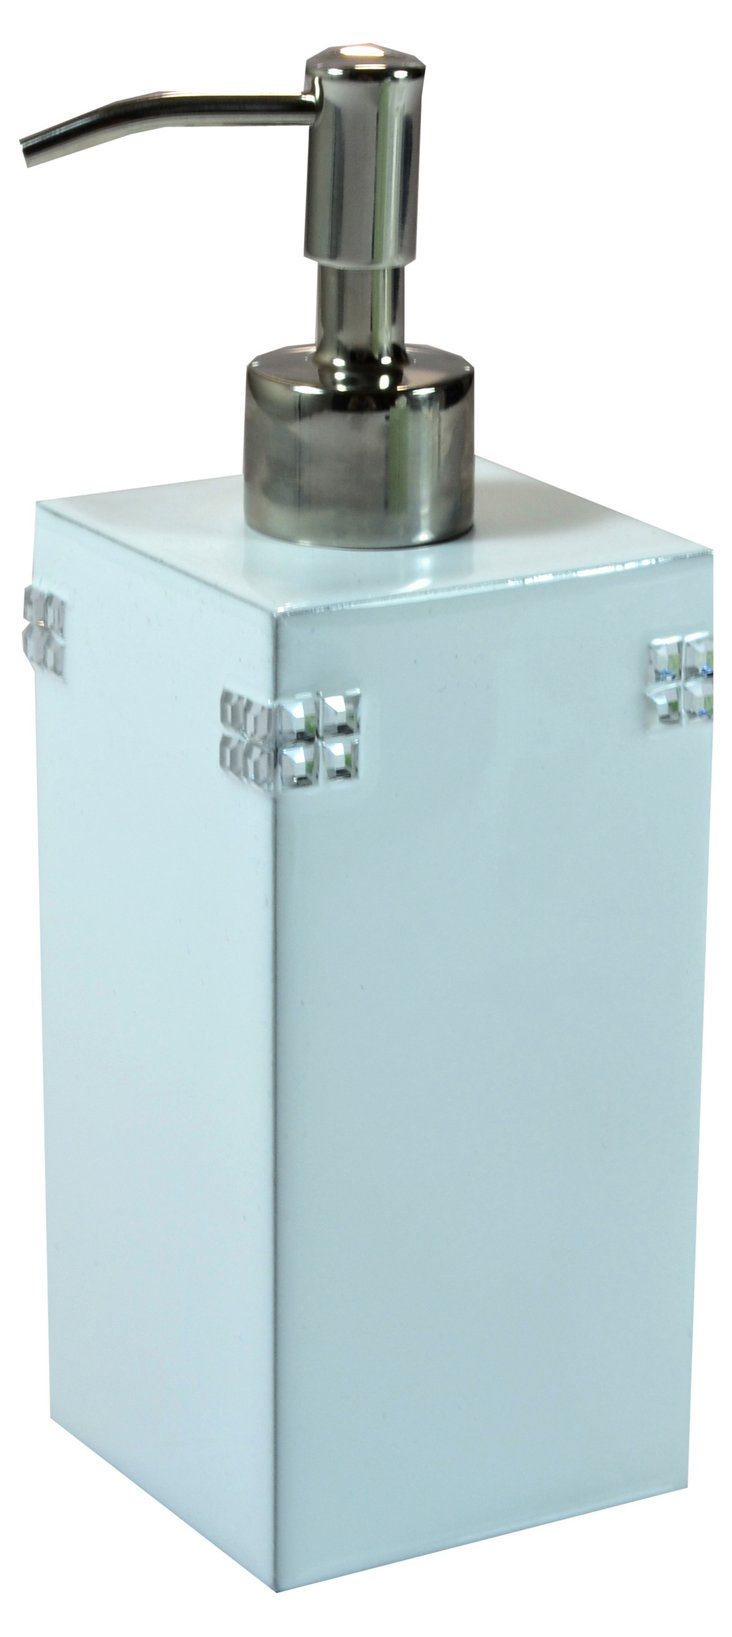 Madison Lotion Pump, Light Blue/Silver